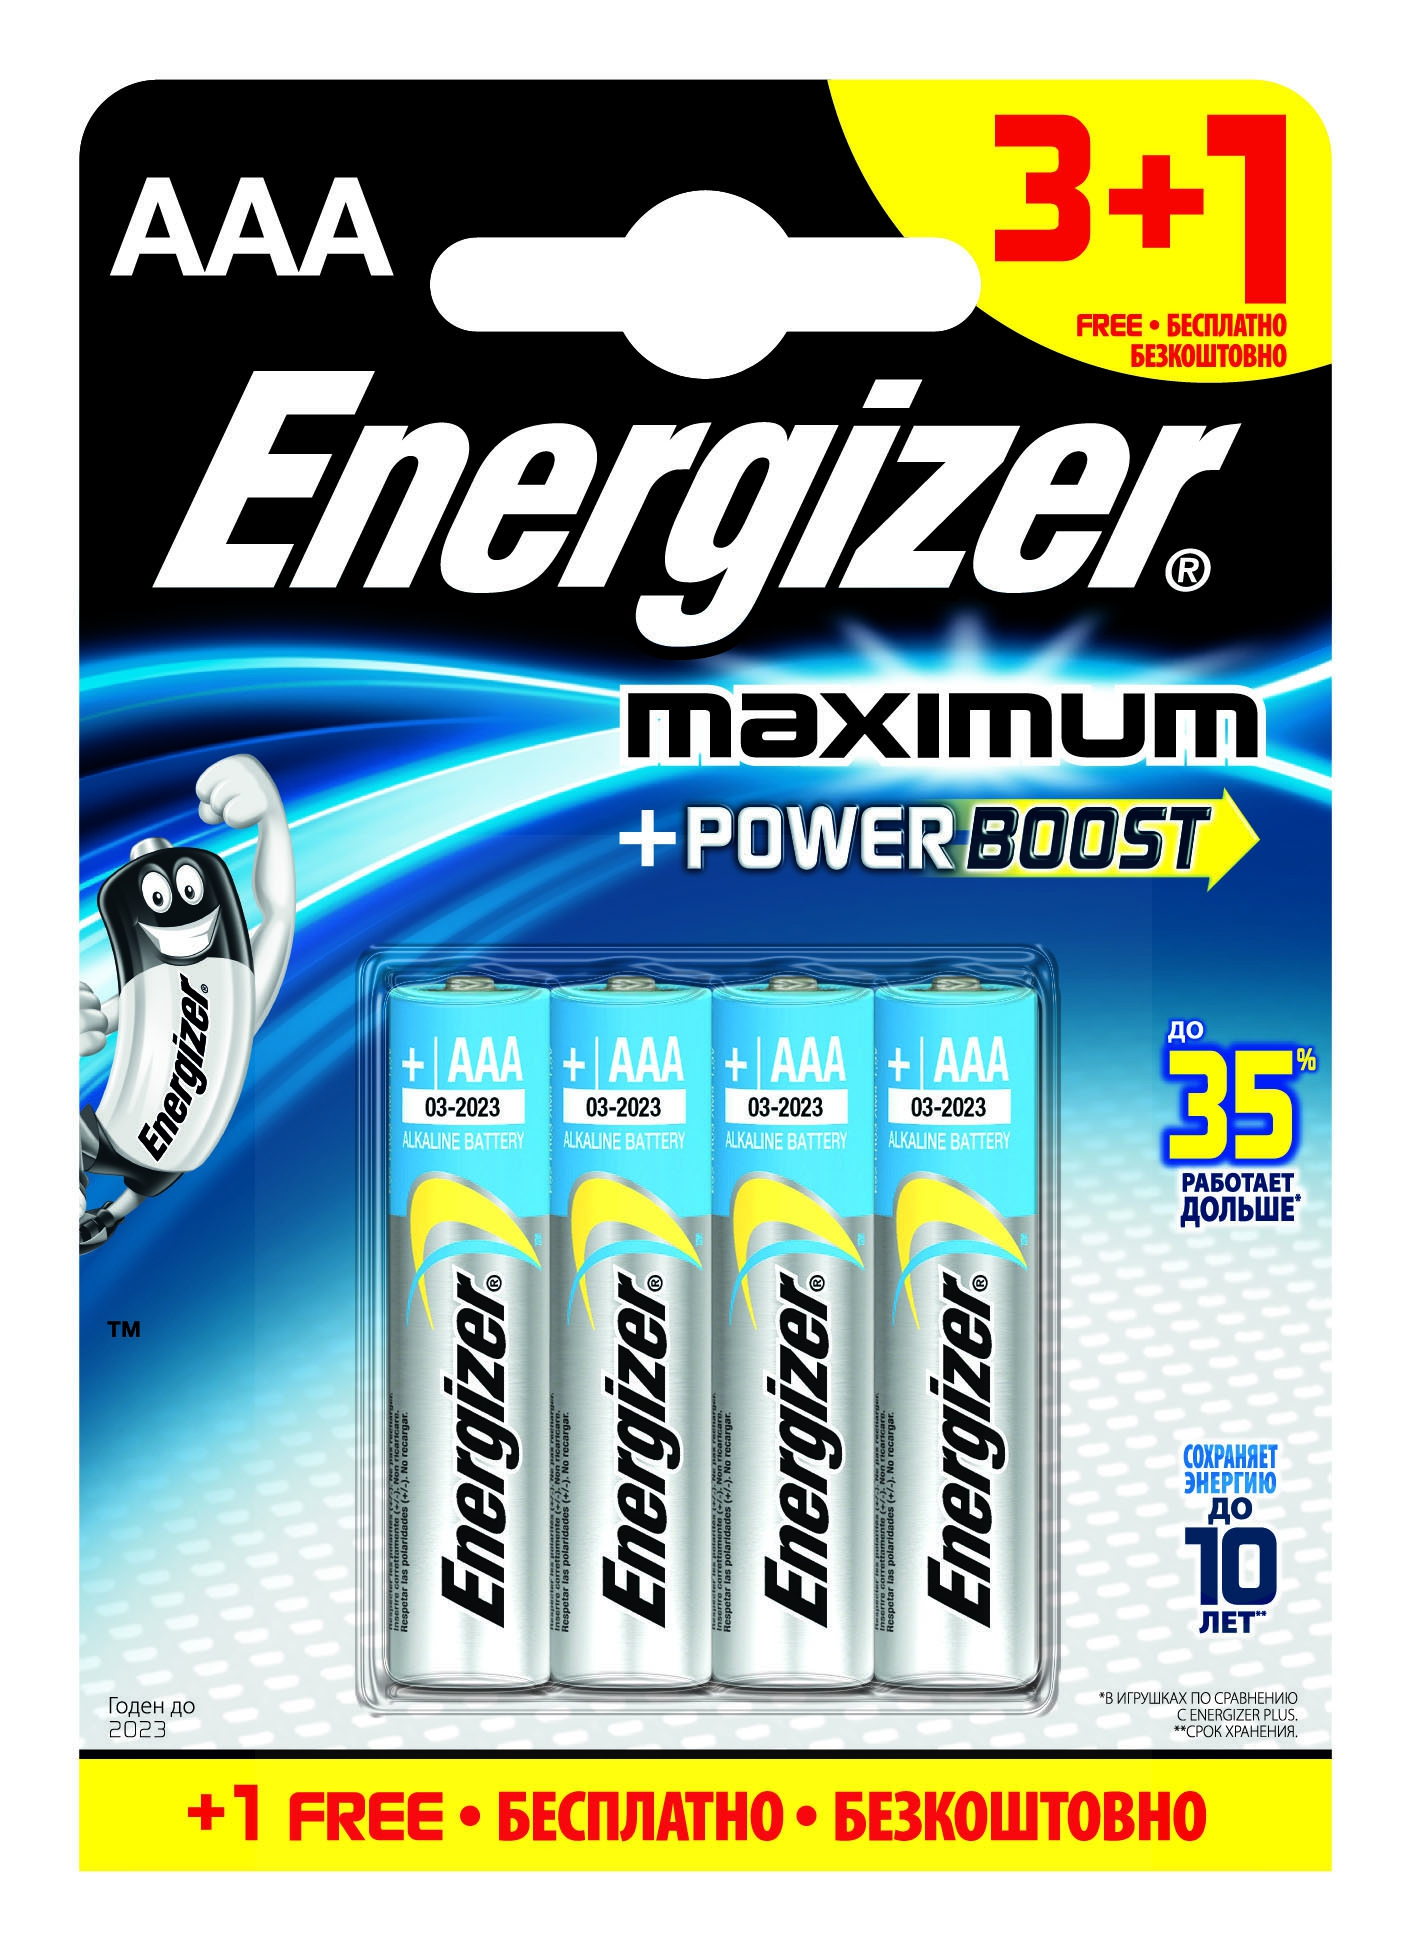 Элементы питания Energizer Energizer Maximum AАA Промо 4 шт батарейки energizer alkaline power ааа 8 шт